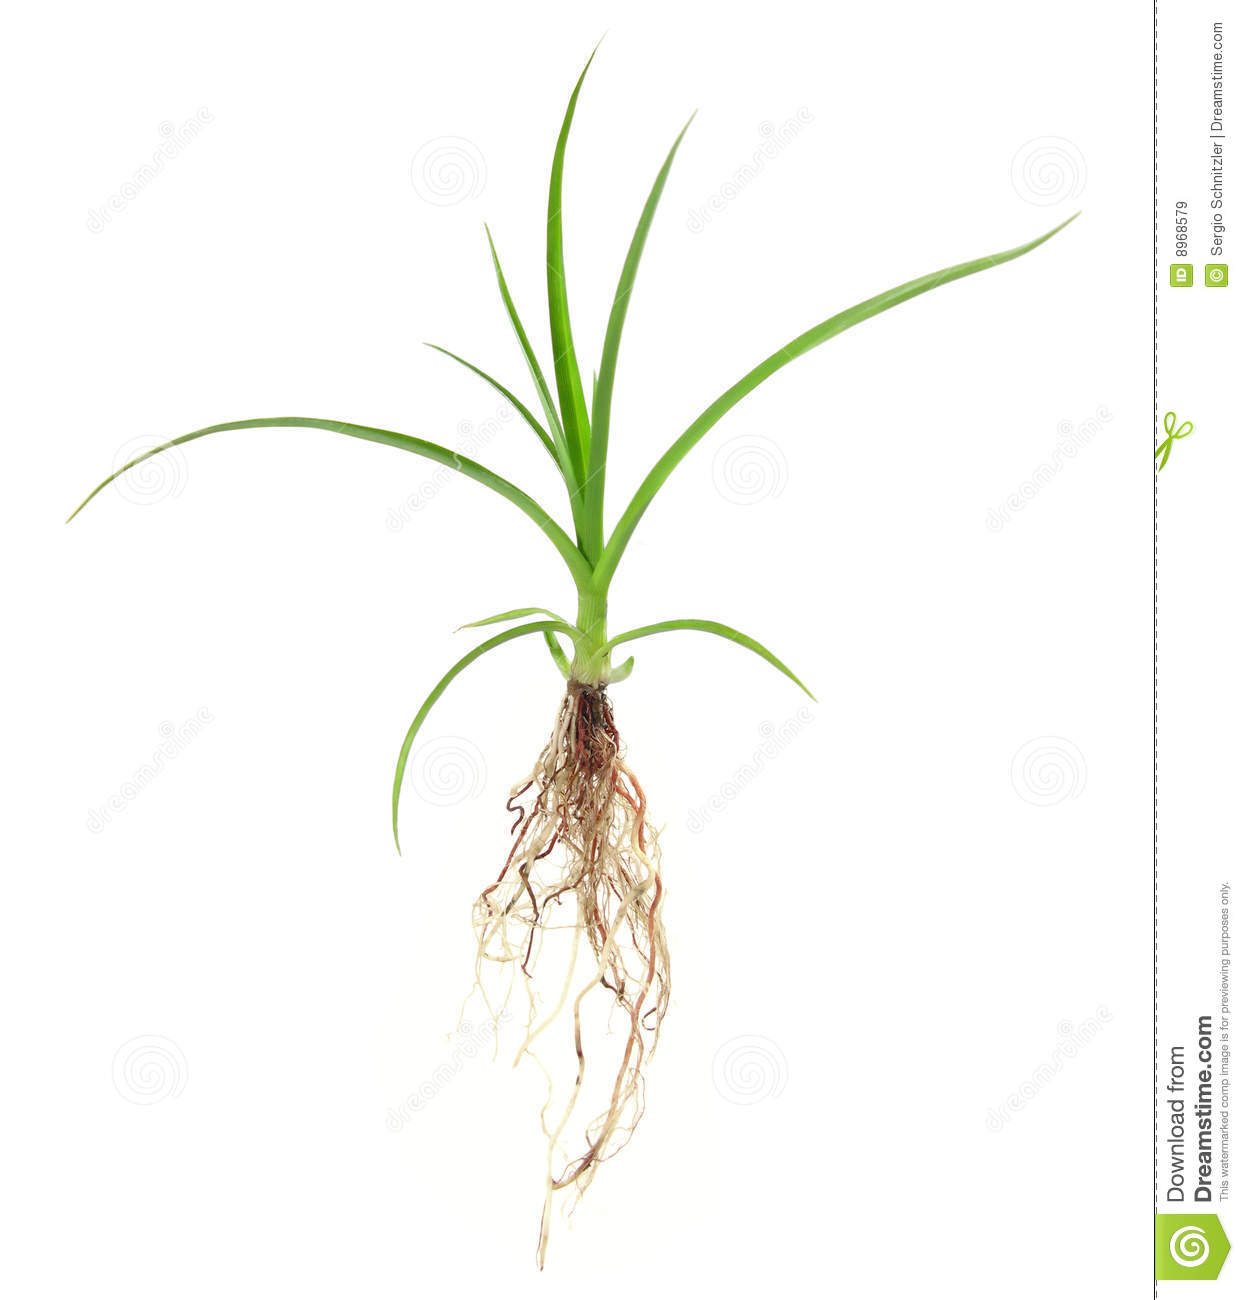 Royalty free plant images clip royalty free download Growing Plant Royalty Free Stock Images - Image: 8968579 clip royalty free download